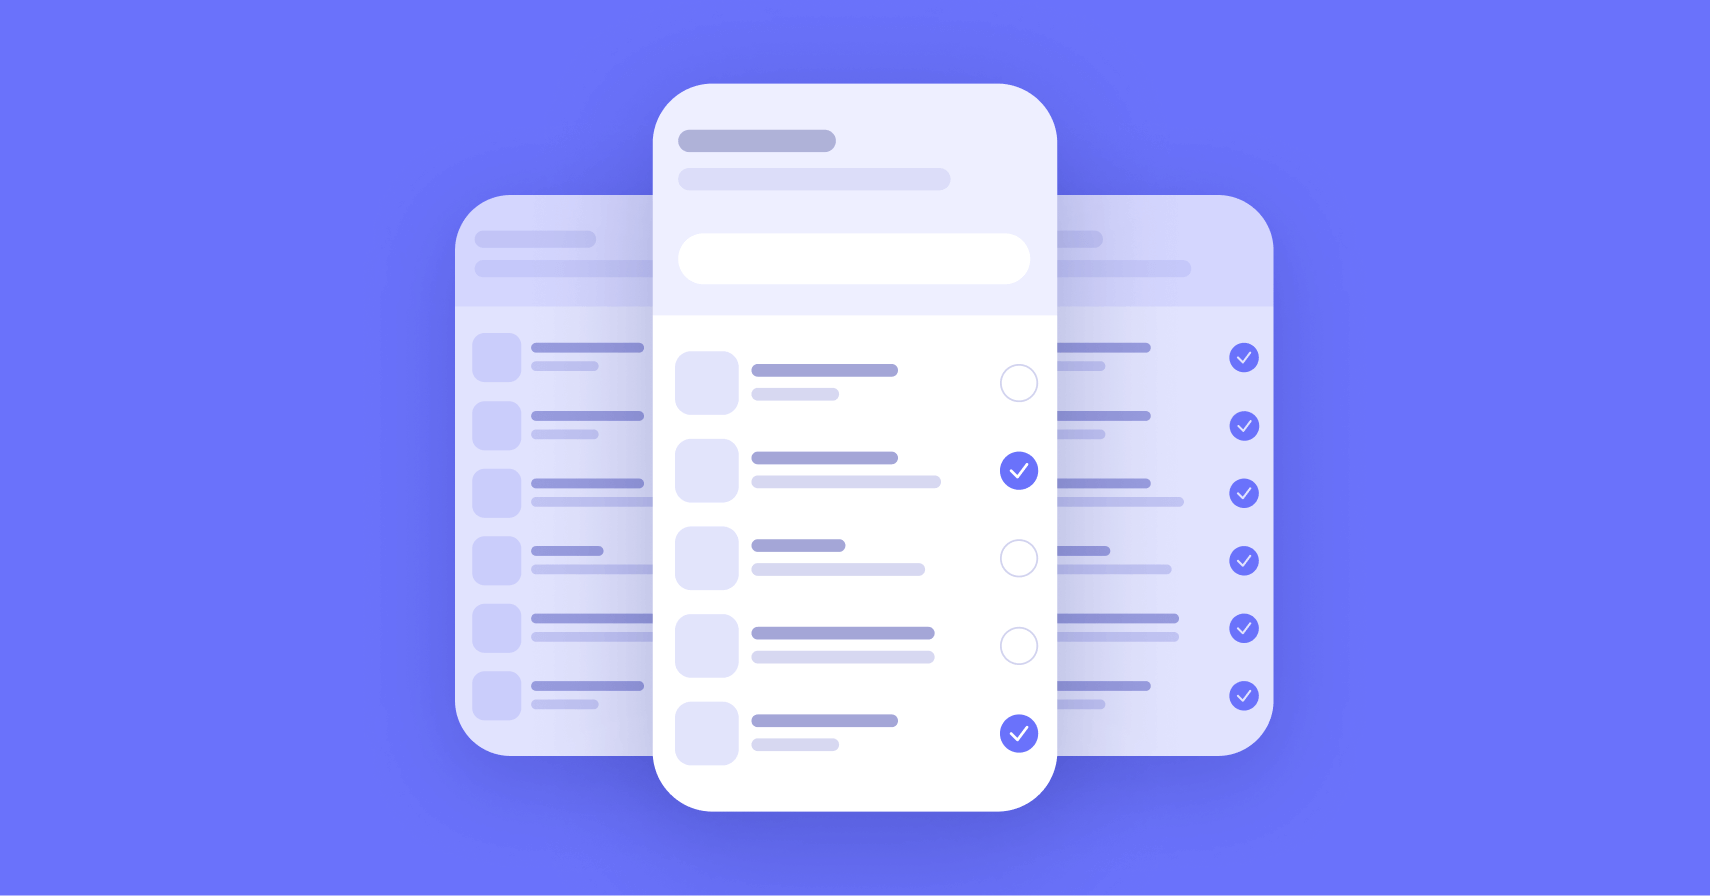 Introducing New Apps Design for our iOS App